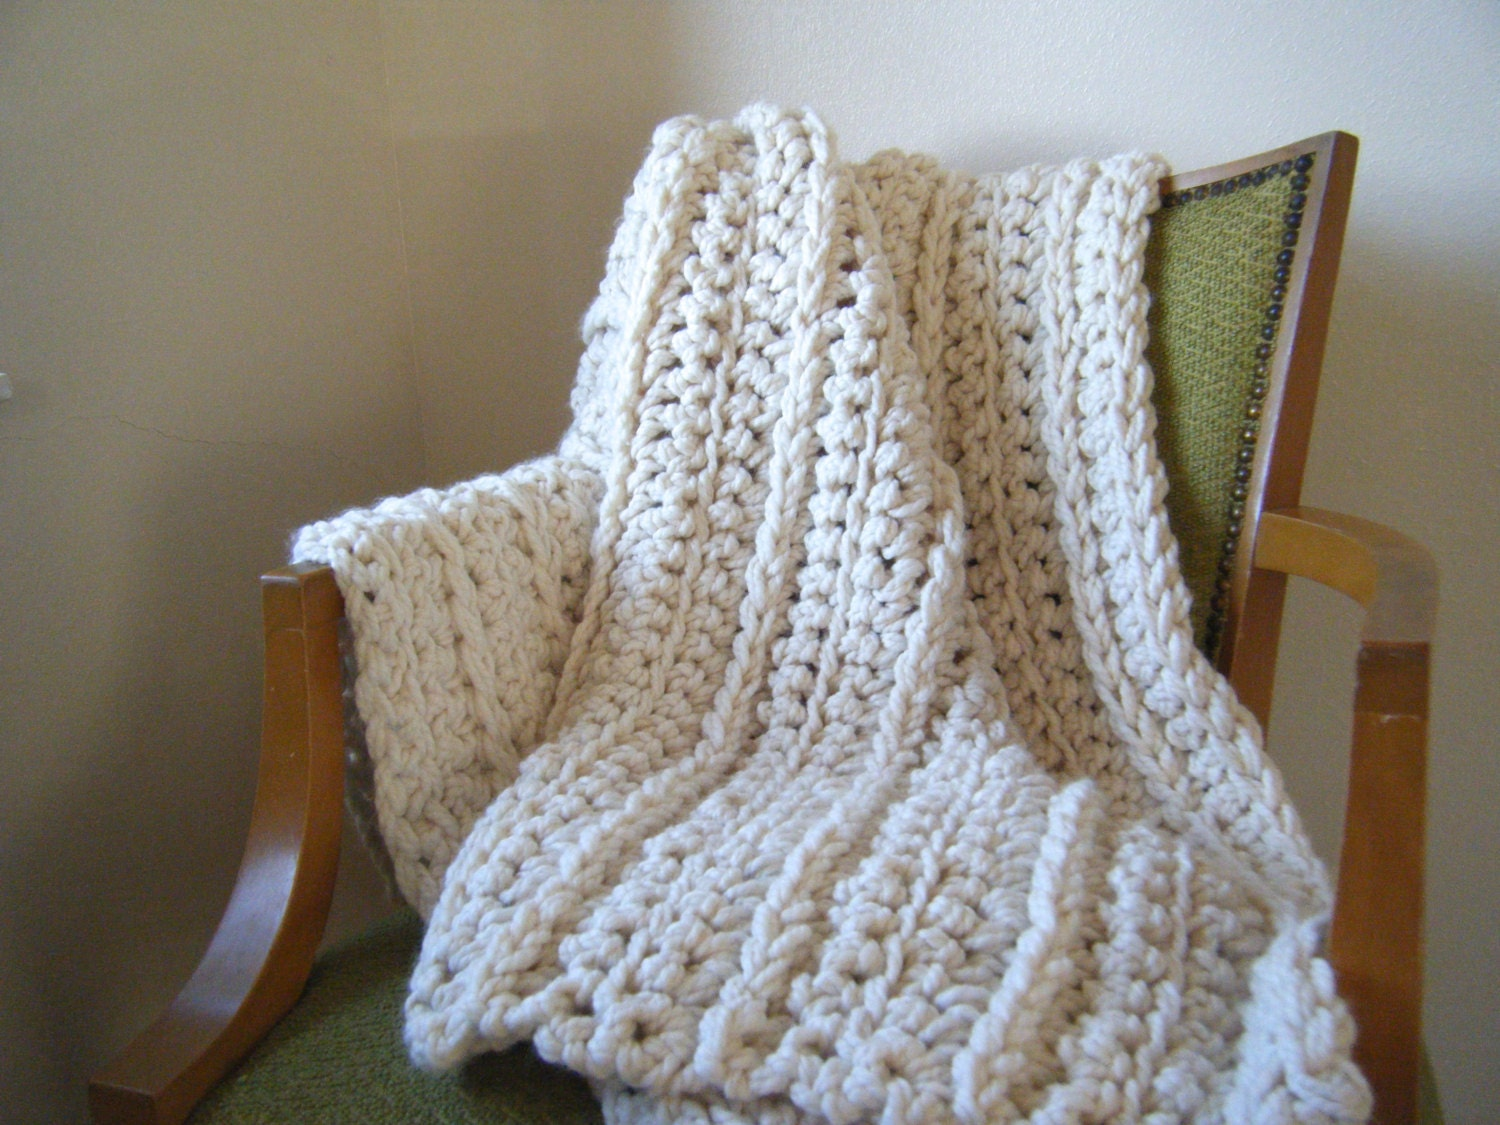 Crochet Patterns Using Chunky Yarn : DIY Crochet Pattern: Super chunky throw ivory cream